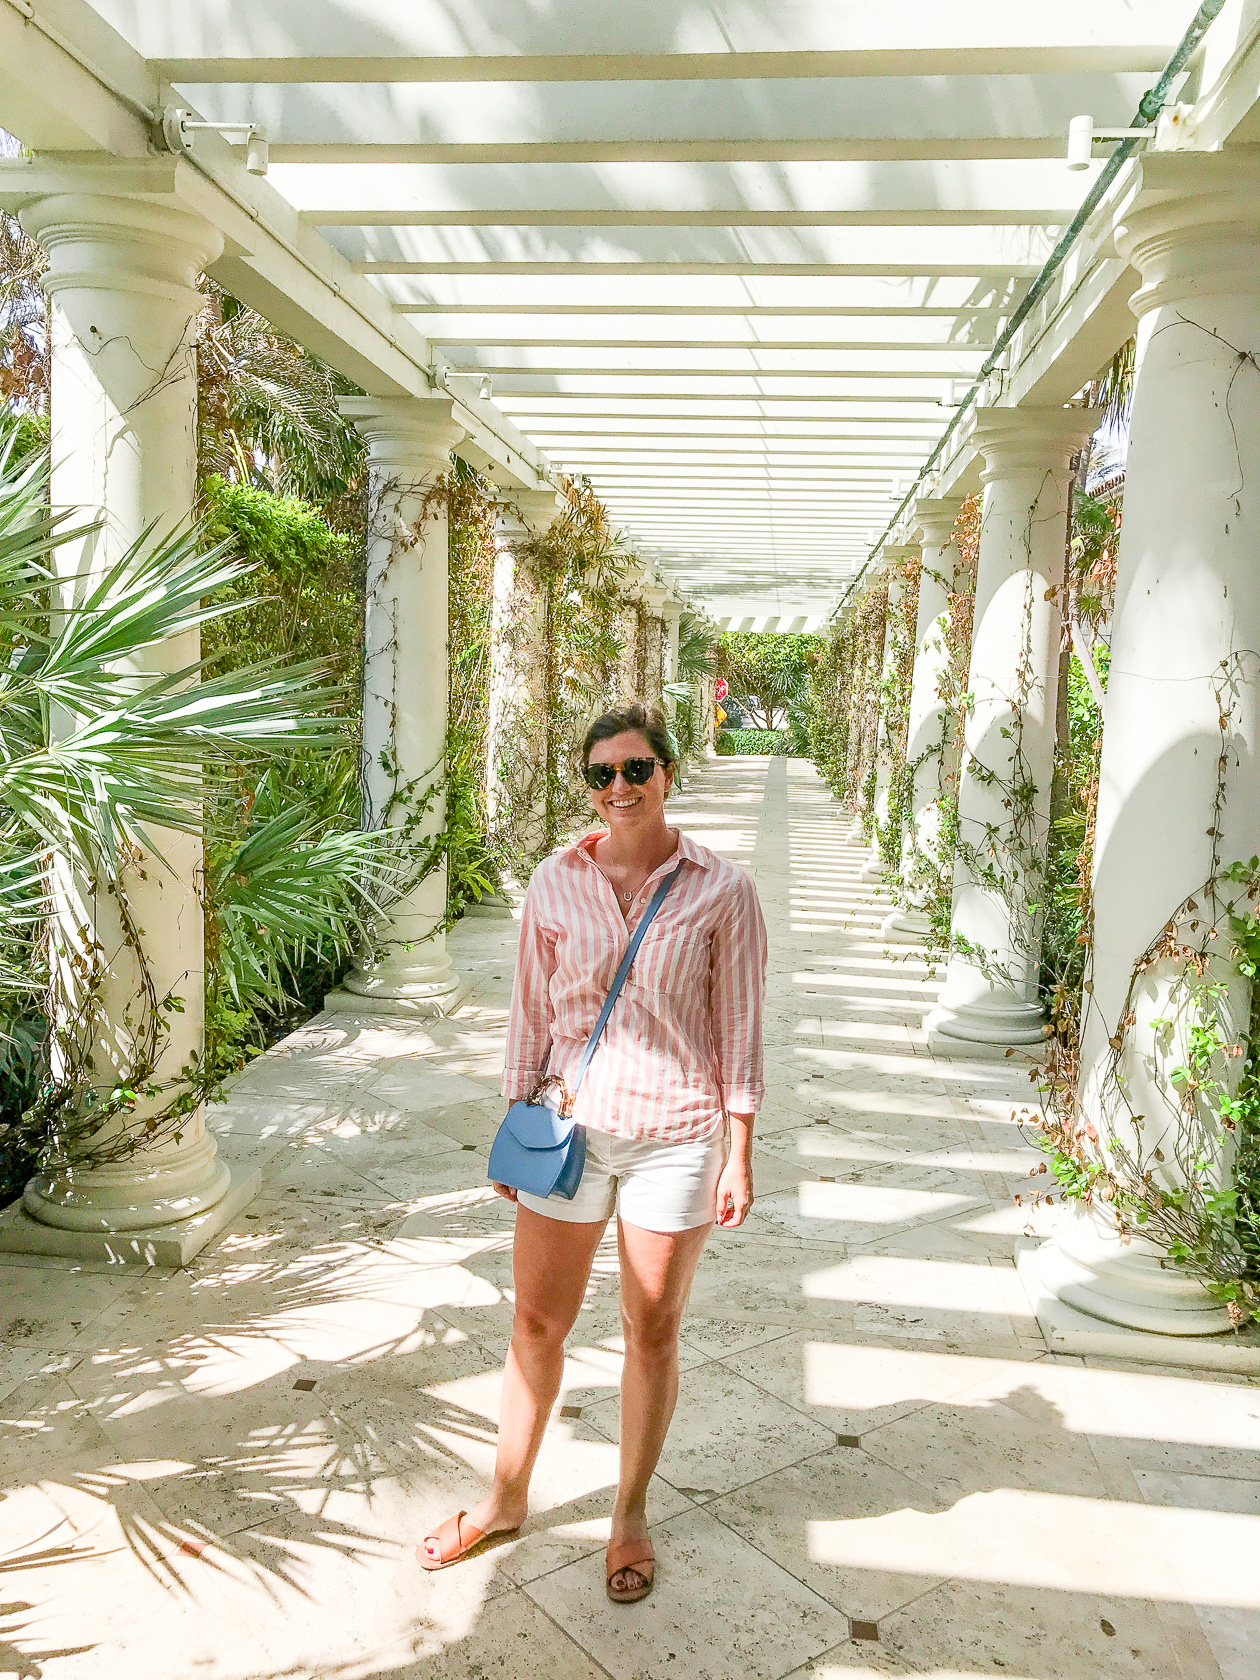 An outdoor hallway at The Breakers